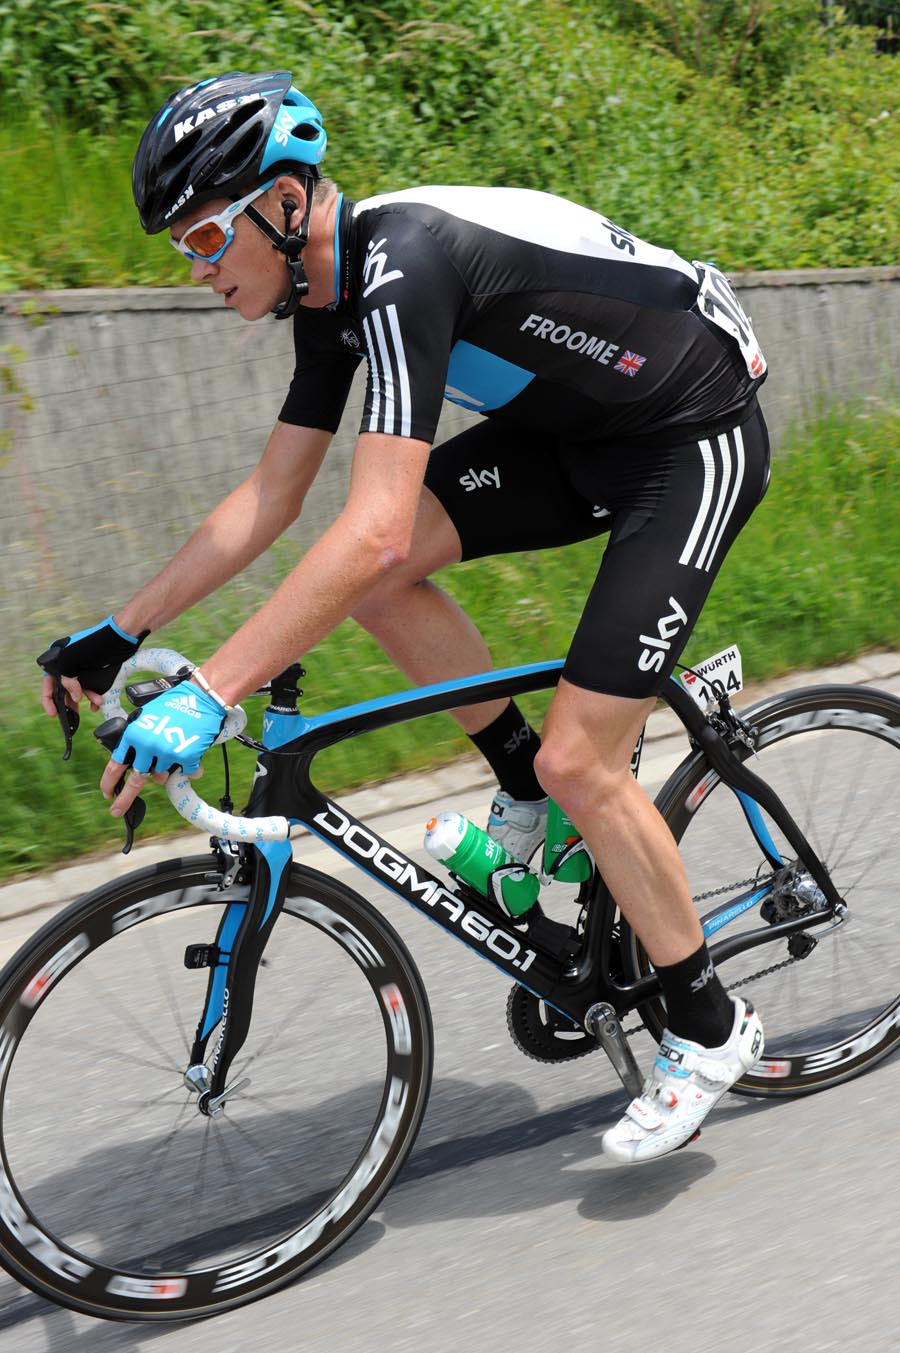 Chris Froome, Tour de Suisse 2011, stage four